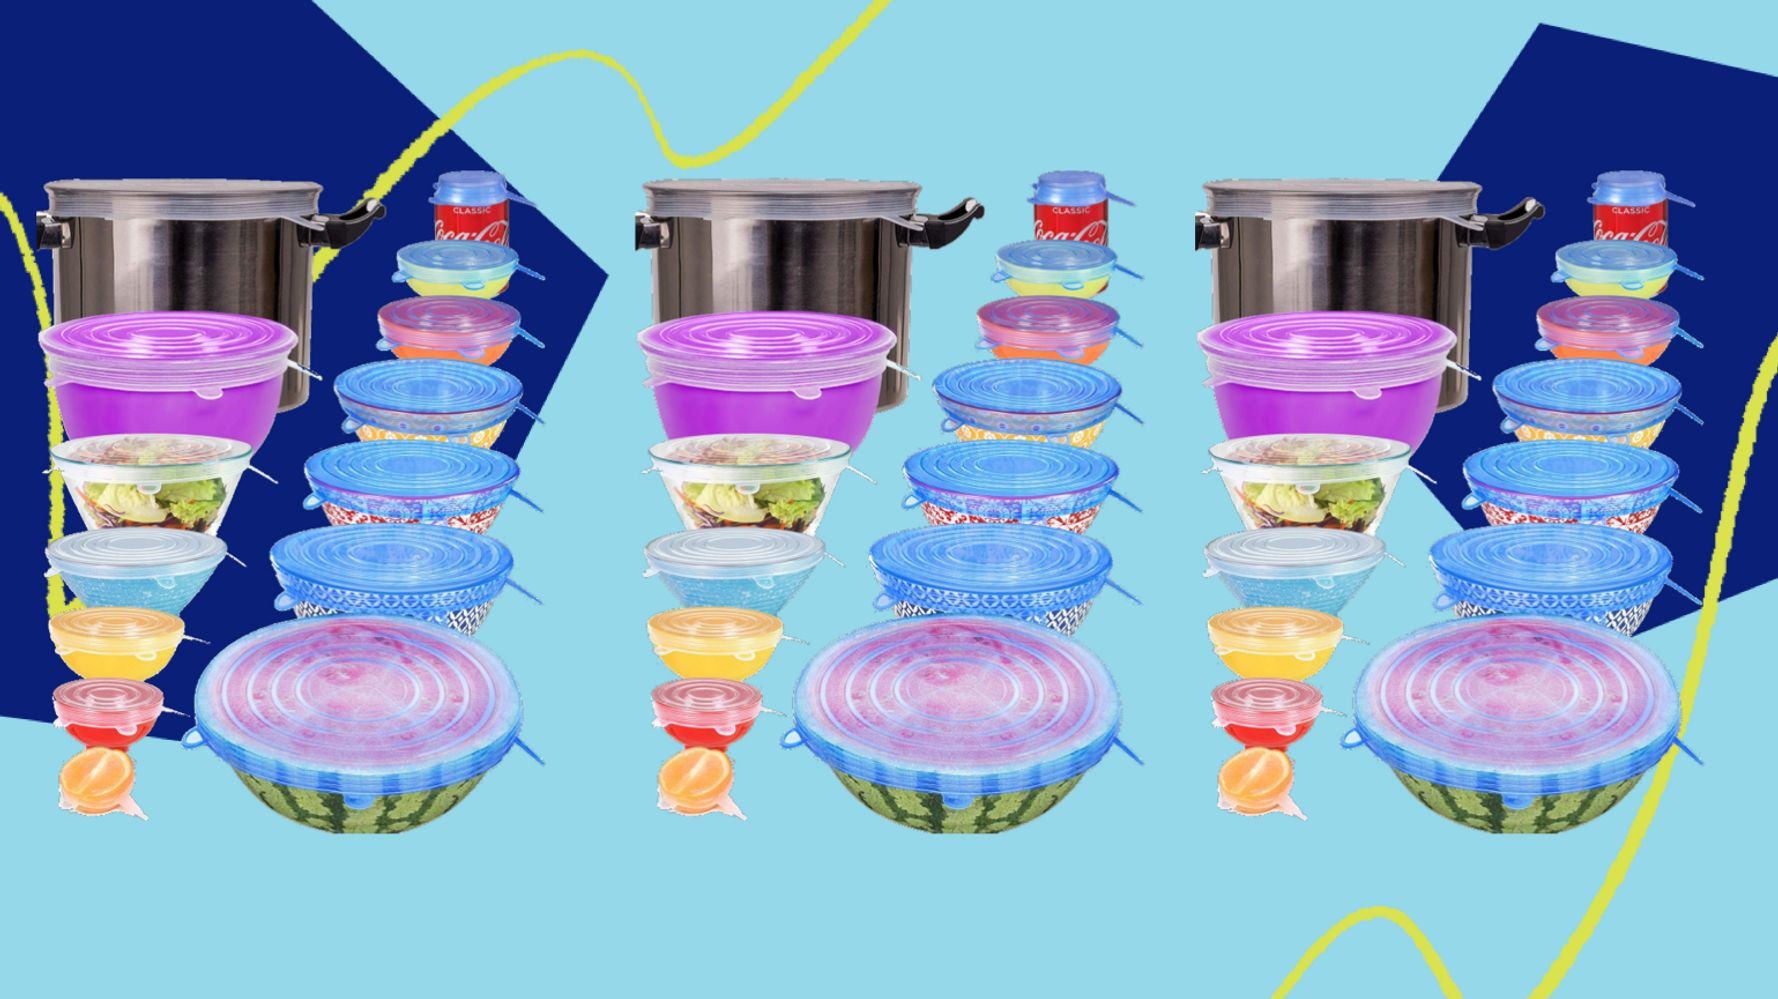 We Reviewed Those Silicone Stretch Lids For Bowls, Pots, Jars And Cups